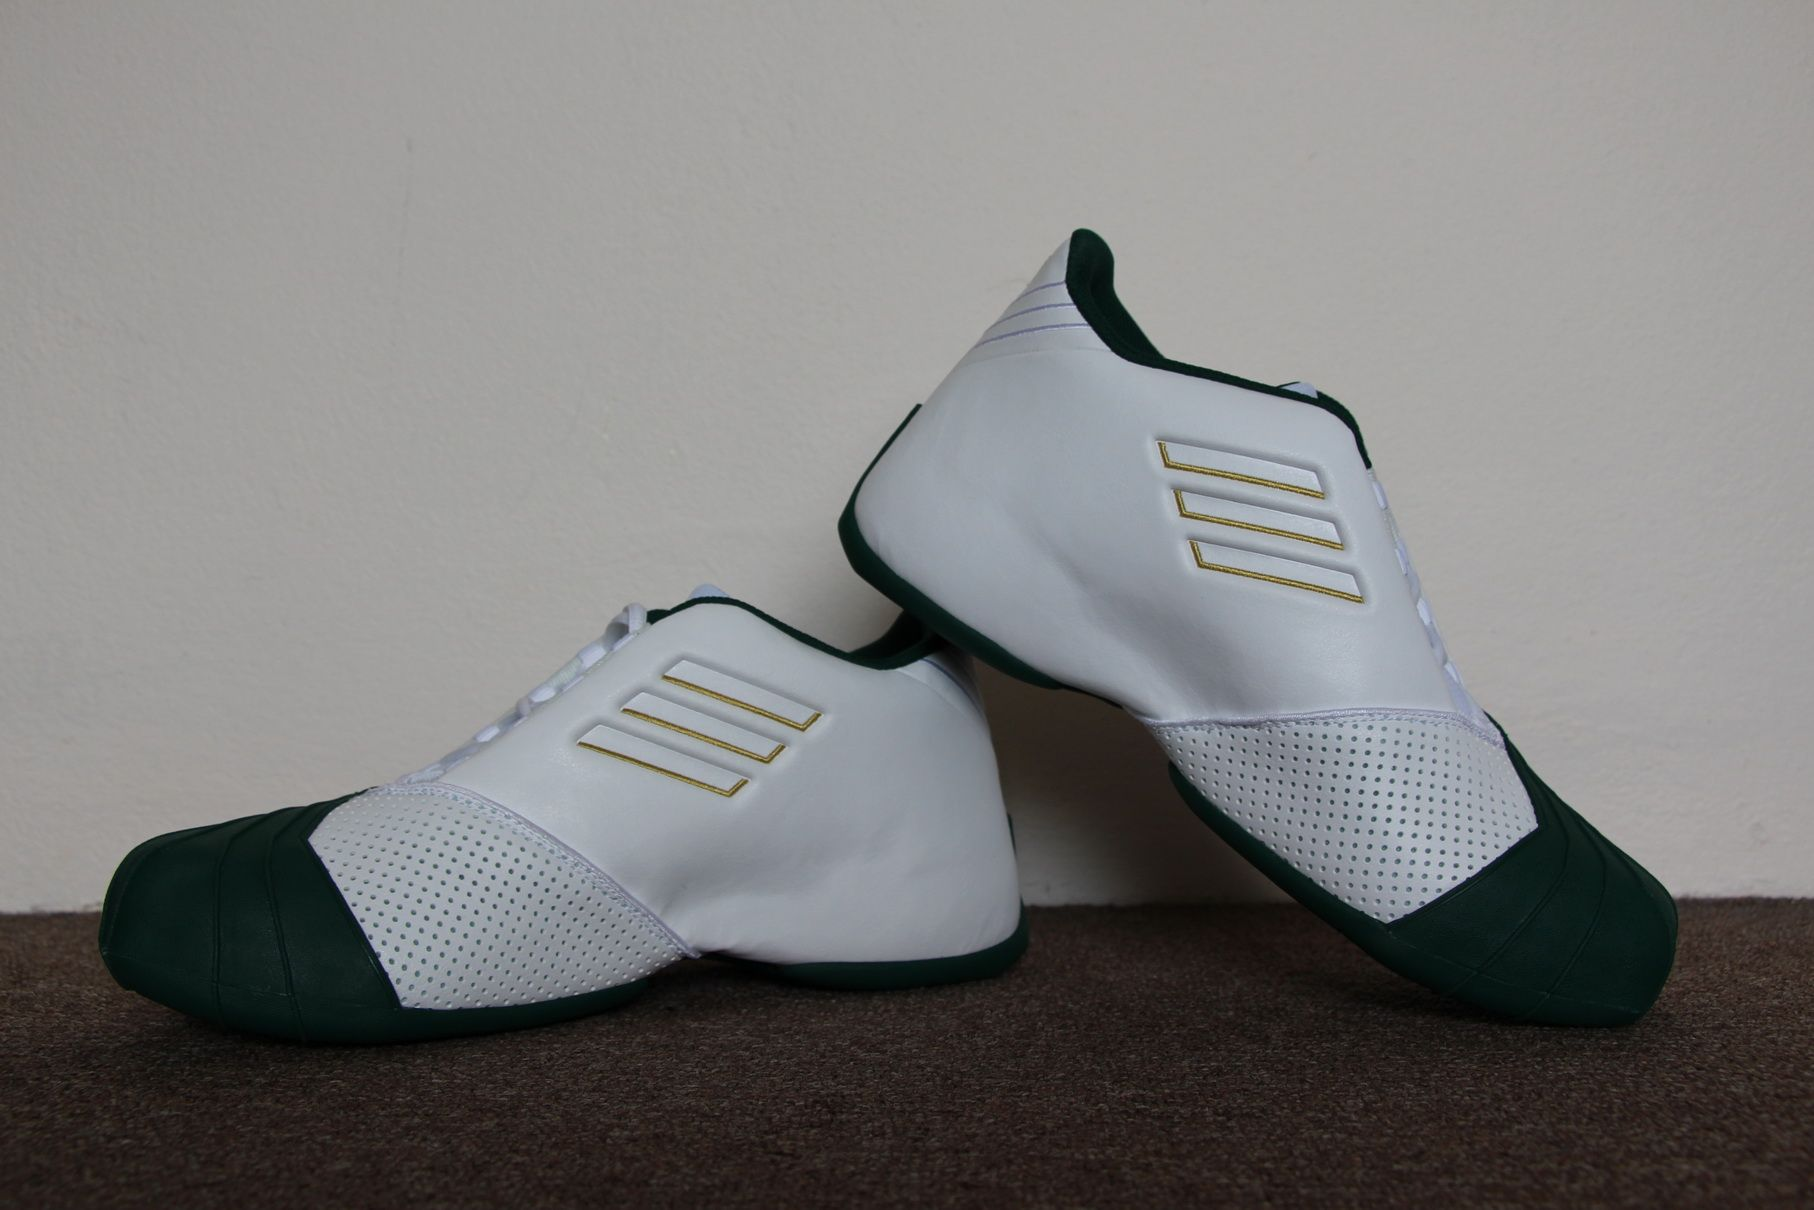 separation shoes 5f42e f2453 Adidas TMAC 1 Lebron James SVSM PE | Nice shoes in 2019 ...